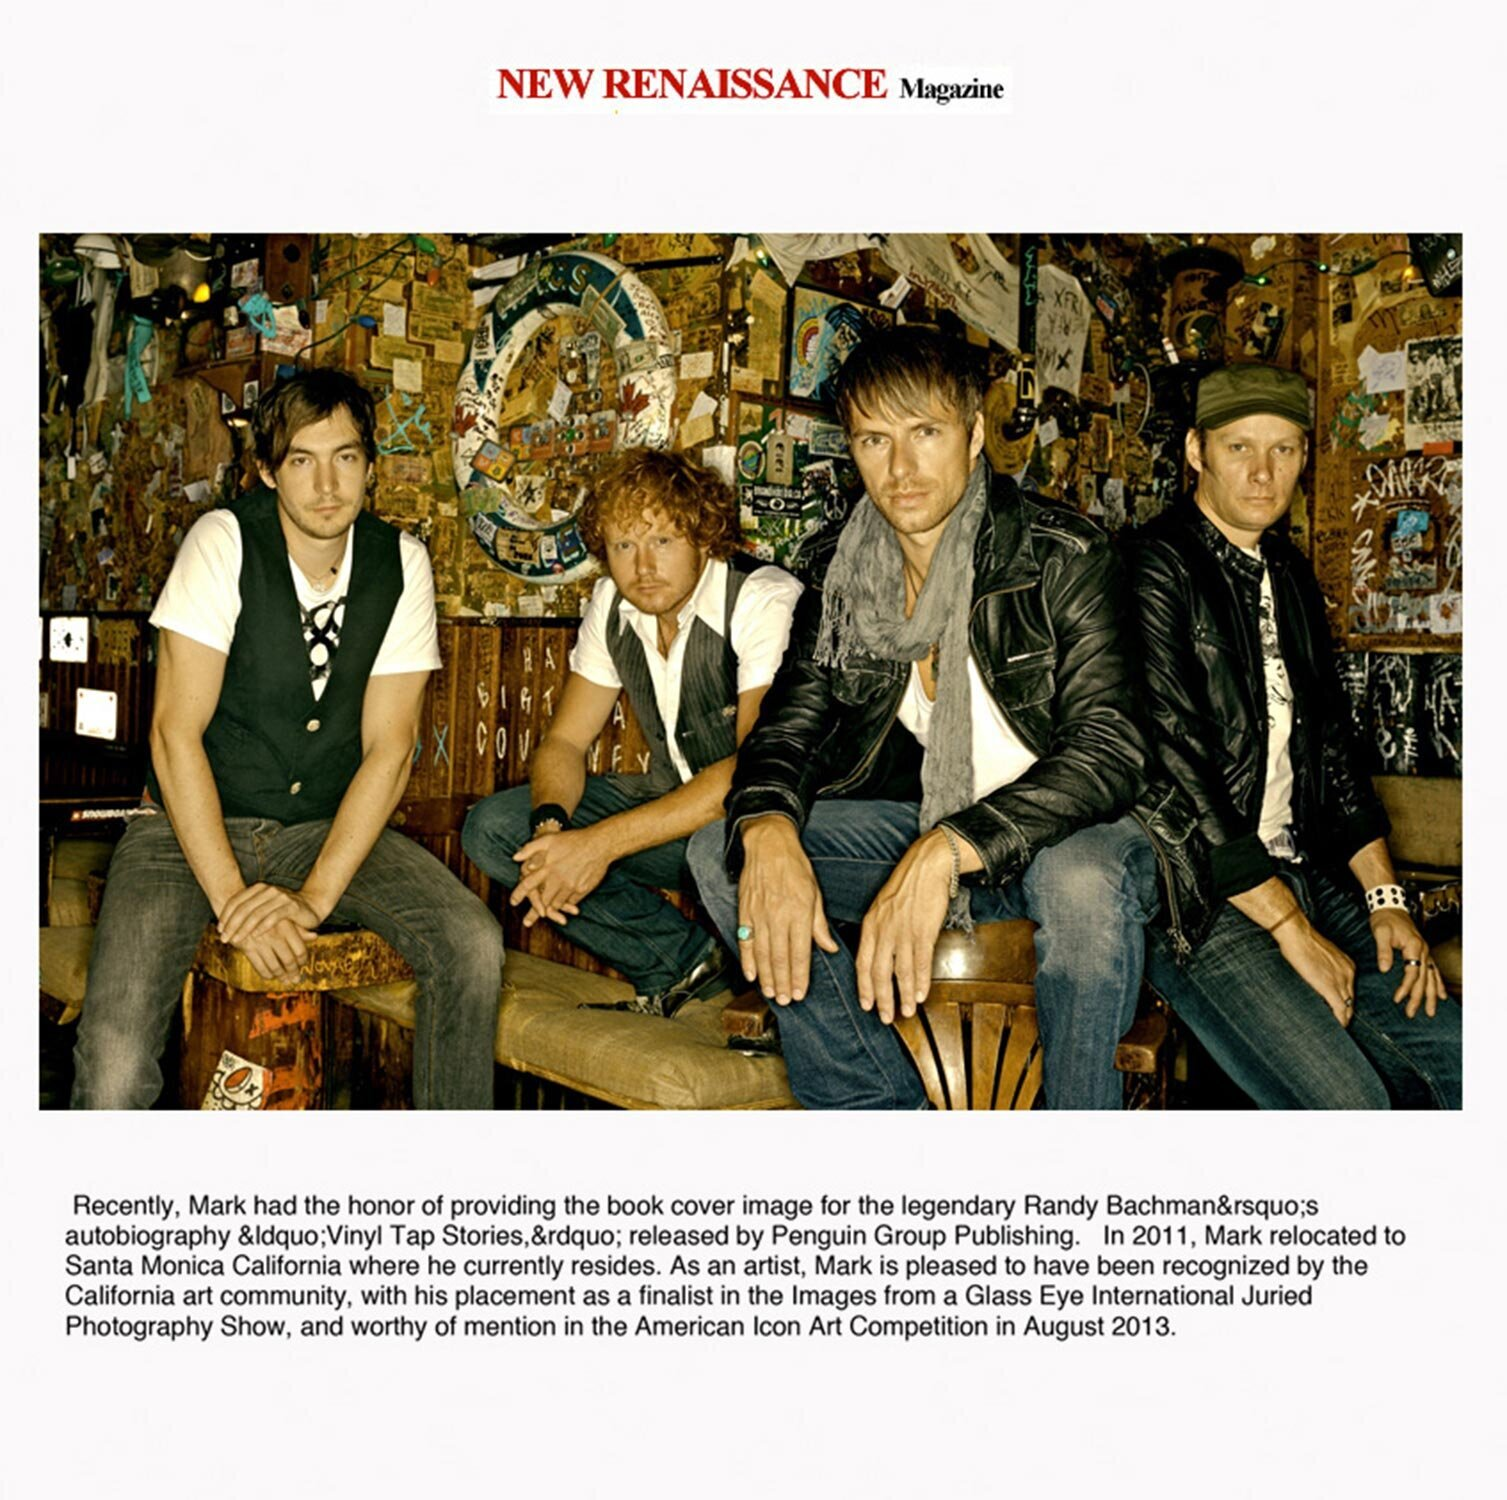 interview-mark-maryanovich-new-renaissance-magazine-page-3-los-angeles